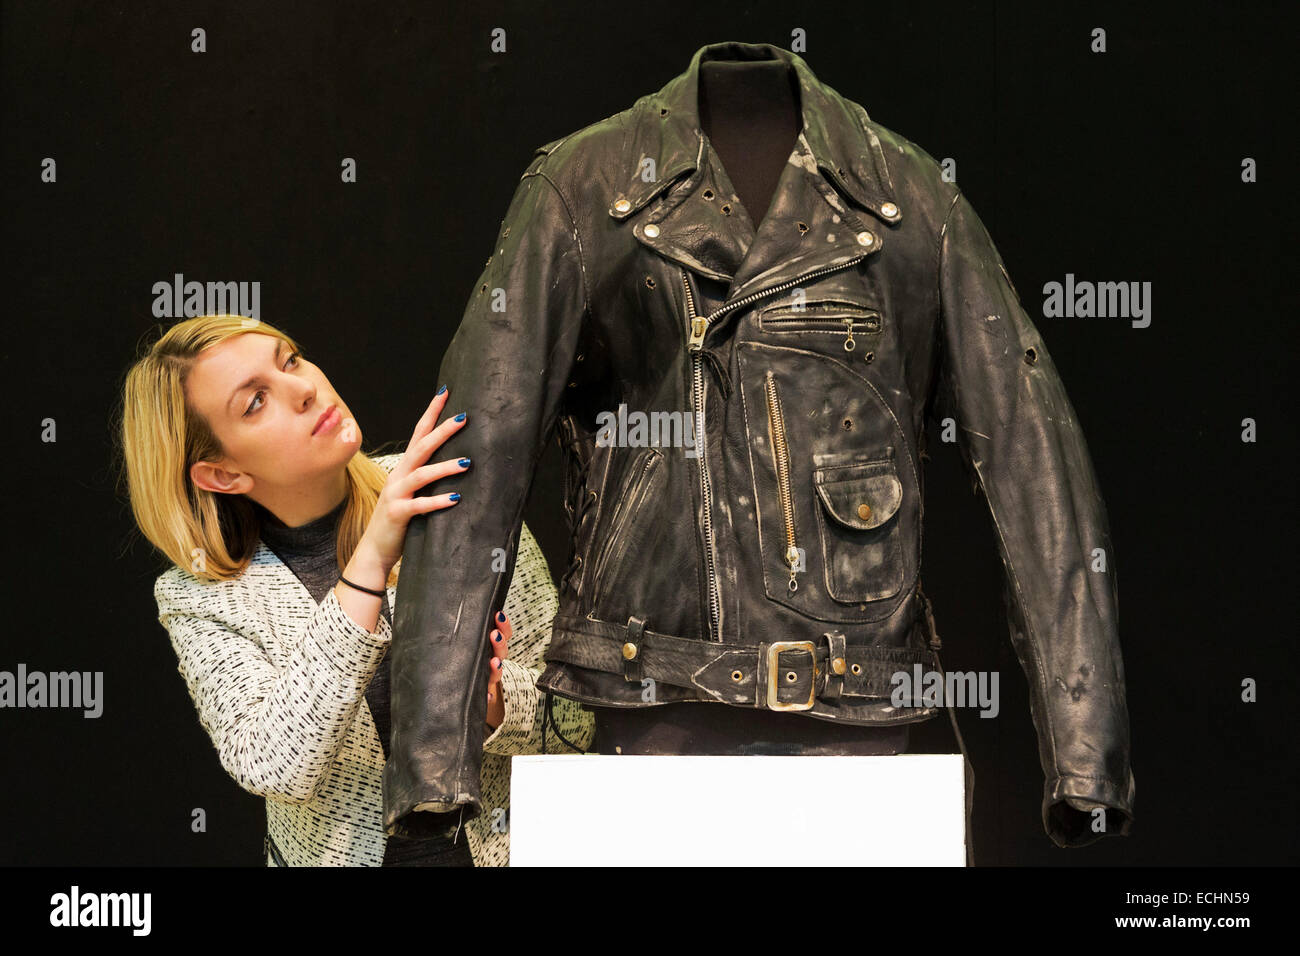 London, UK. 12 December 2014. A Christie's employee looks at a black leather jacket made for Arnold Schwarzenegger - Stock Image